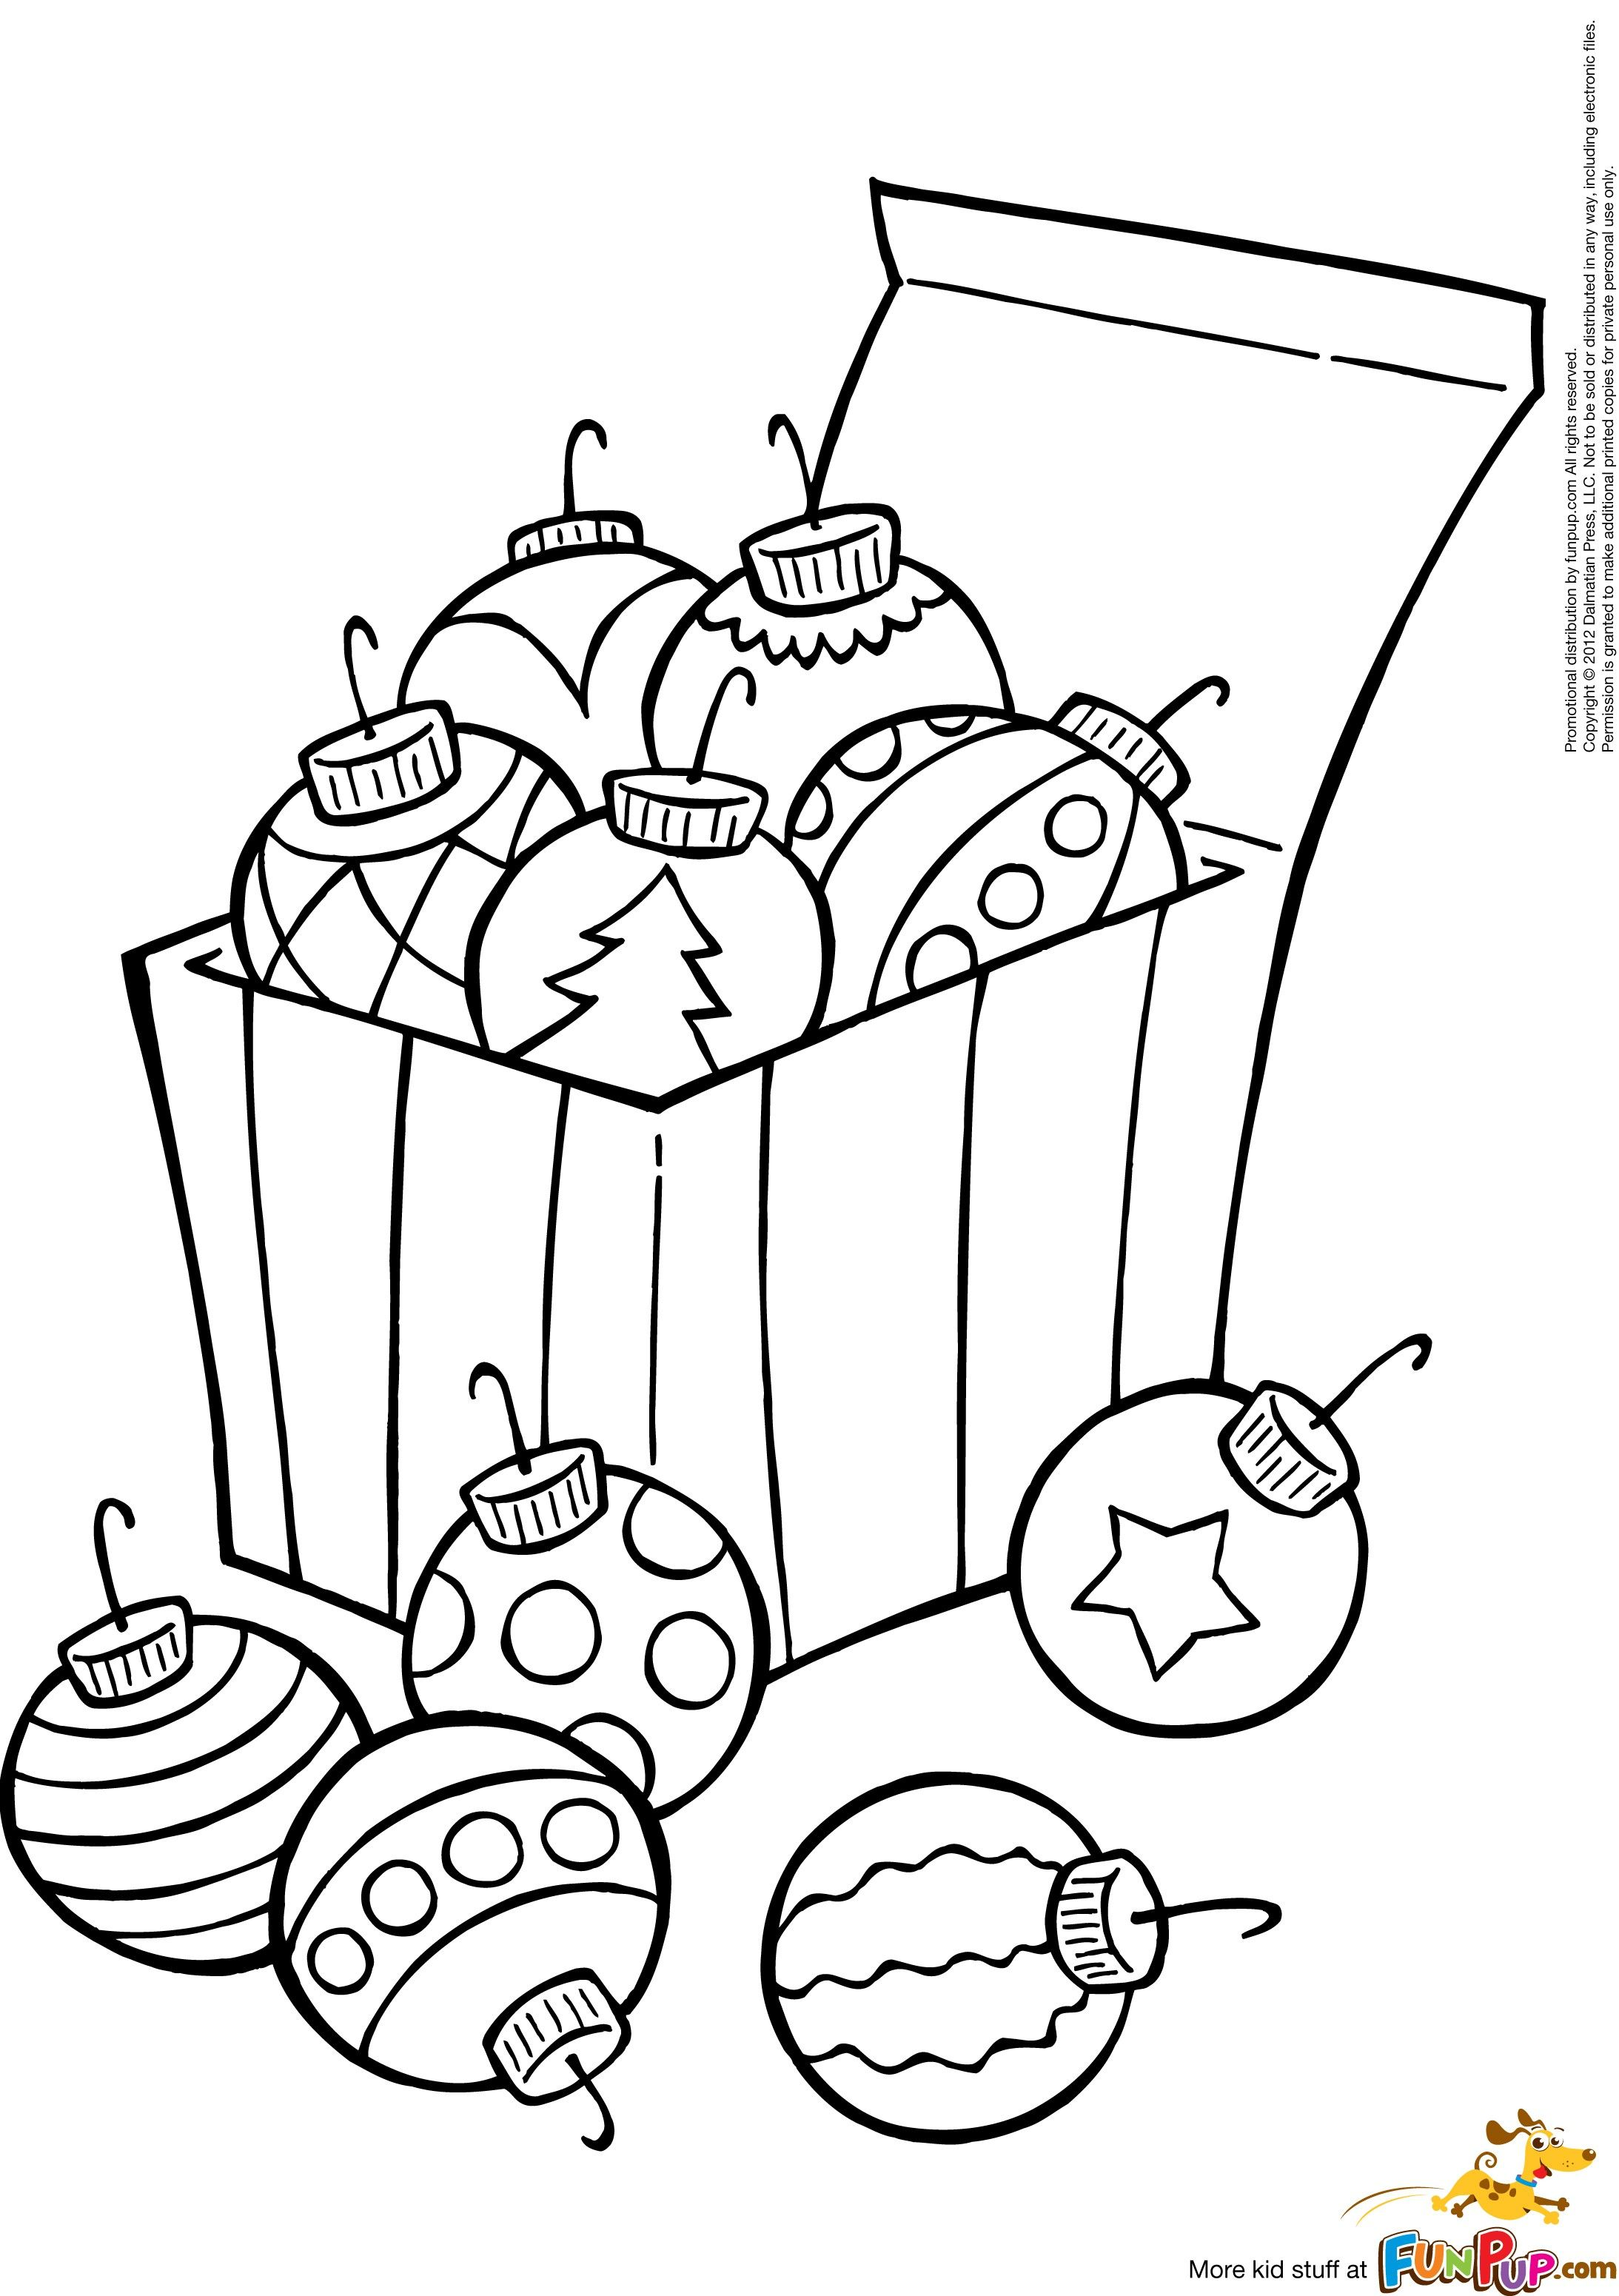 Christbaumkugeln At.Ausmalbild Christbaumkugeln Coloring Pgs Coloring Pages